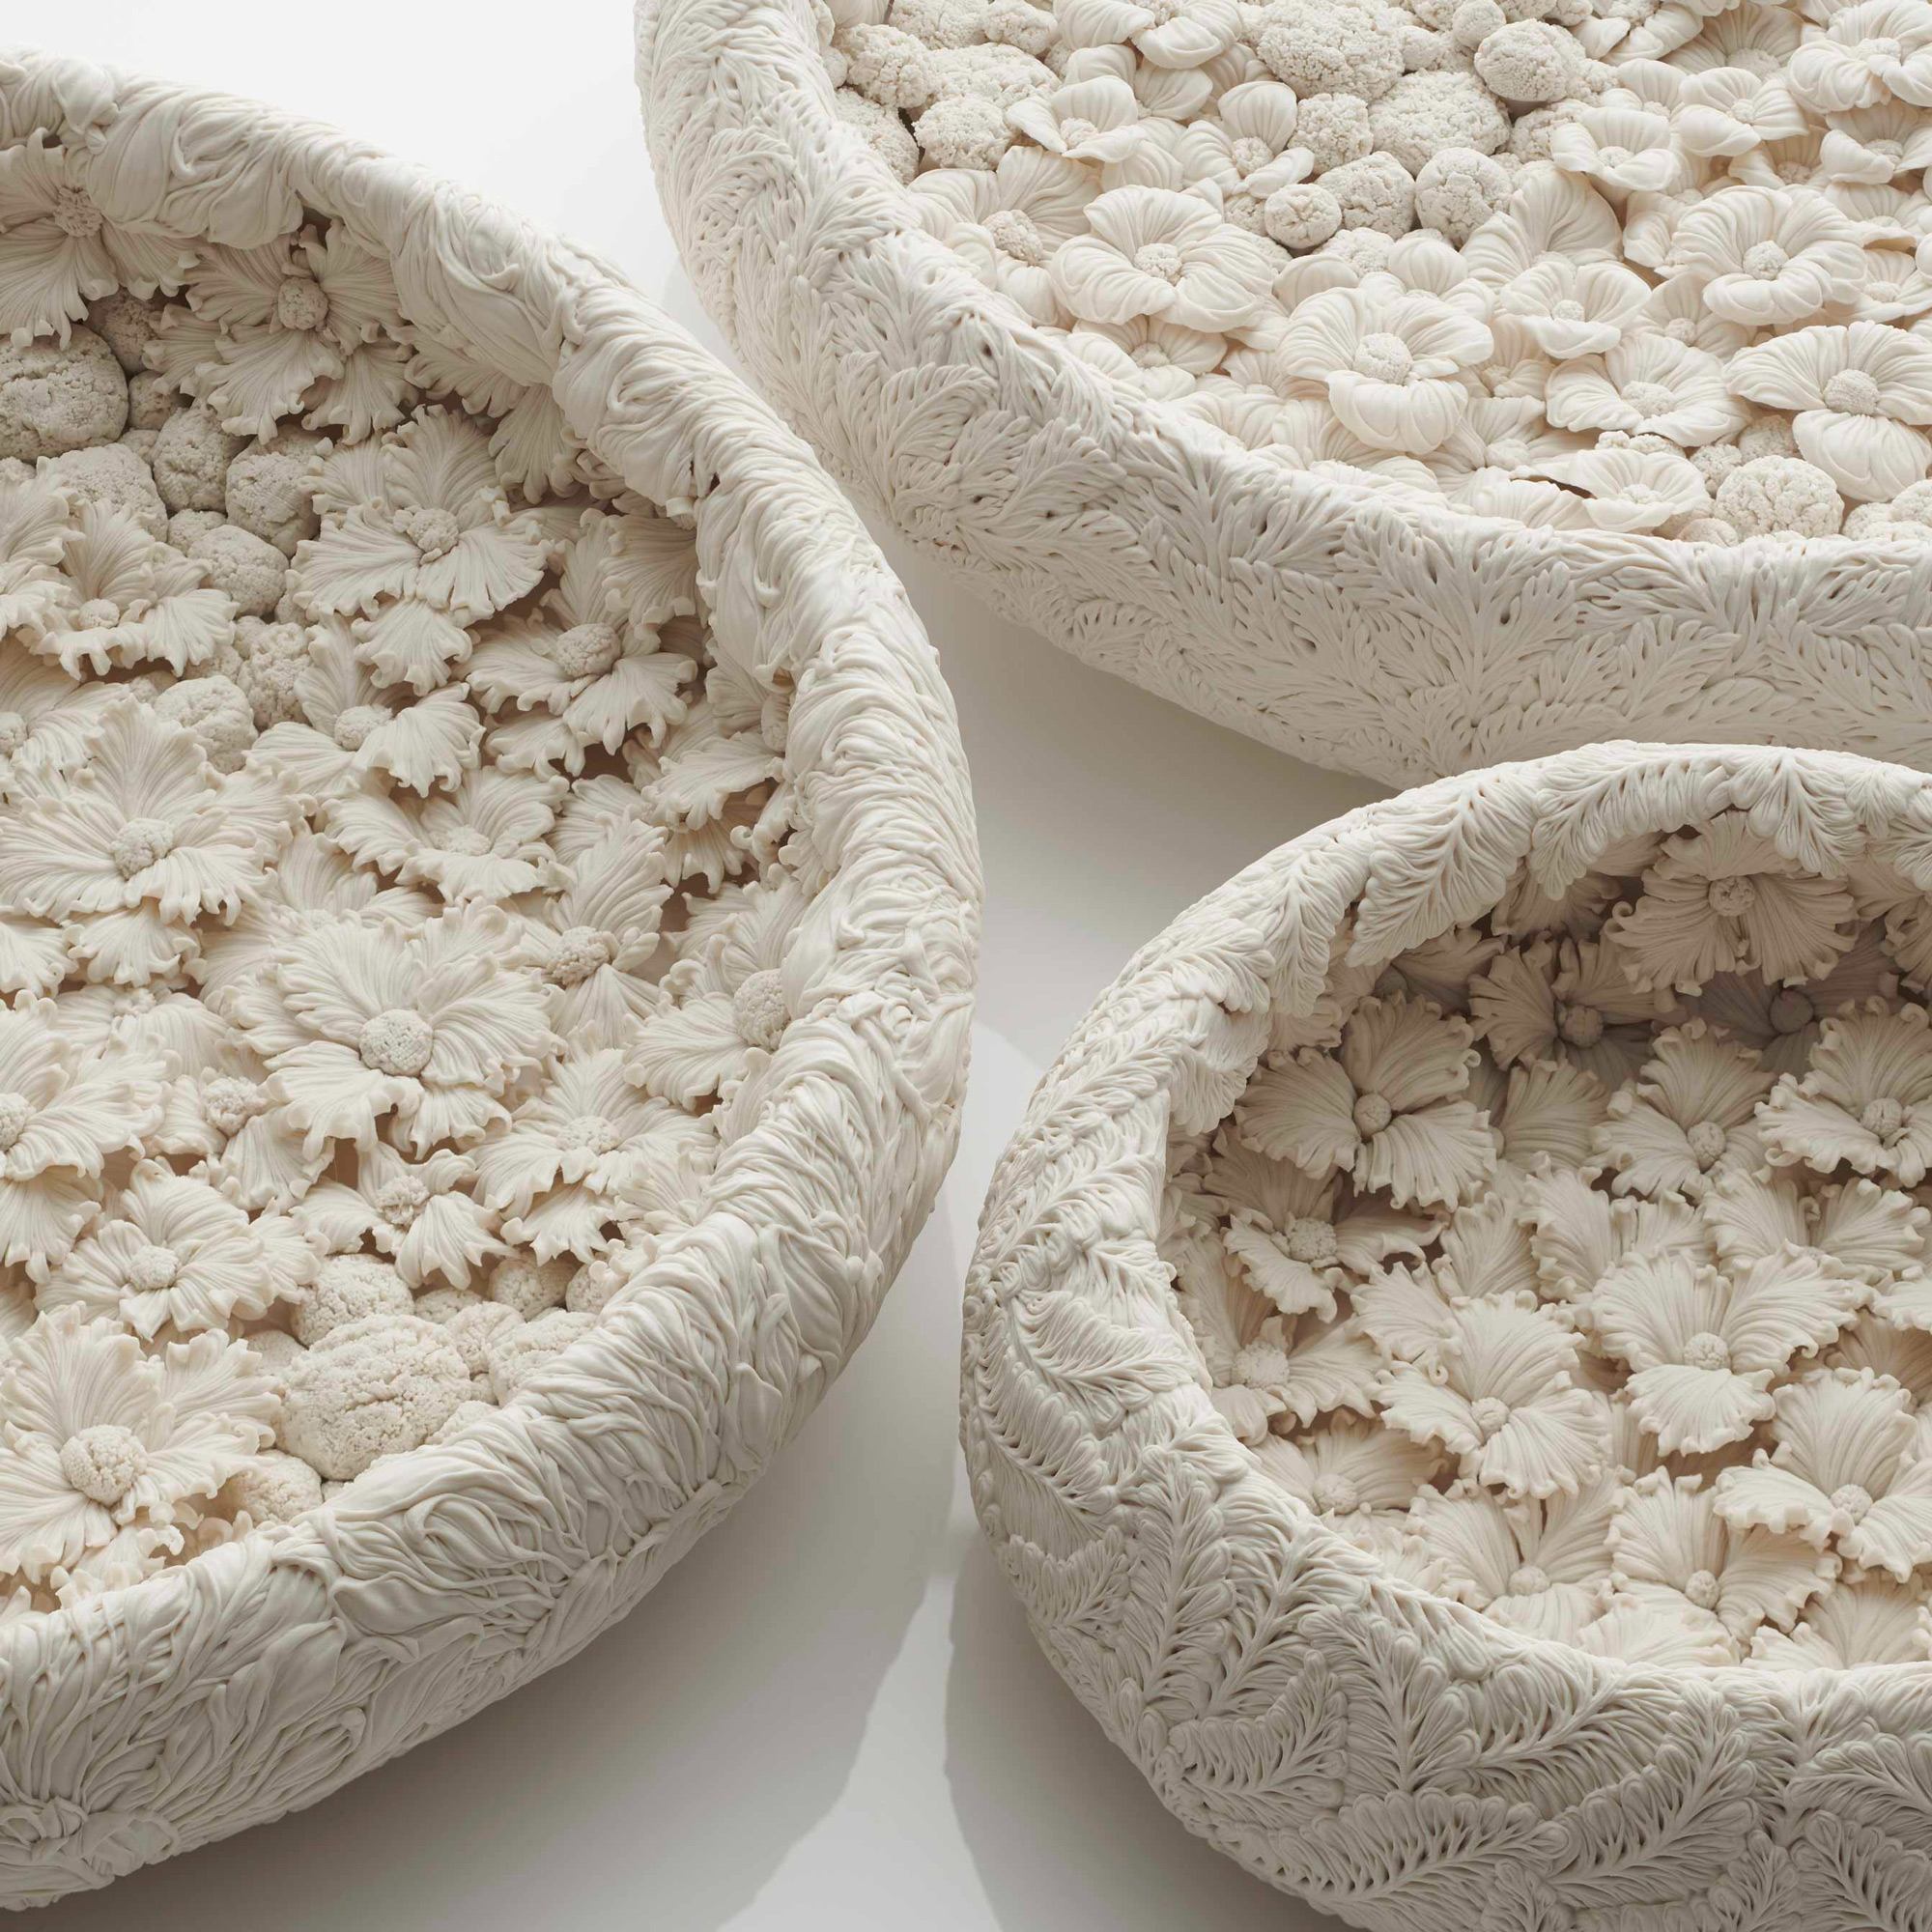 Magnificently Detailed Porcelain Vessels by Hitomi Hosono Are Blossoming with Hundreds of Flowers, Leaves, and Branches